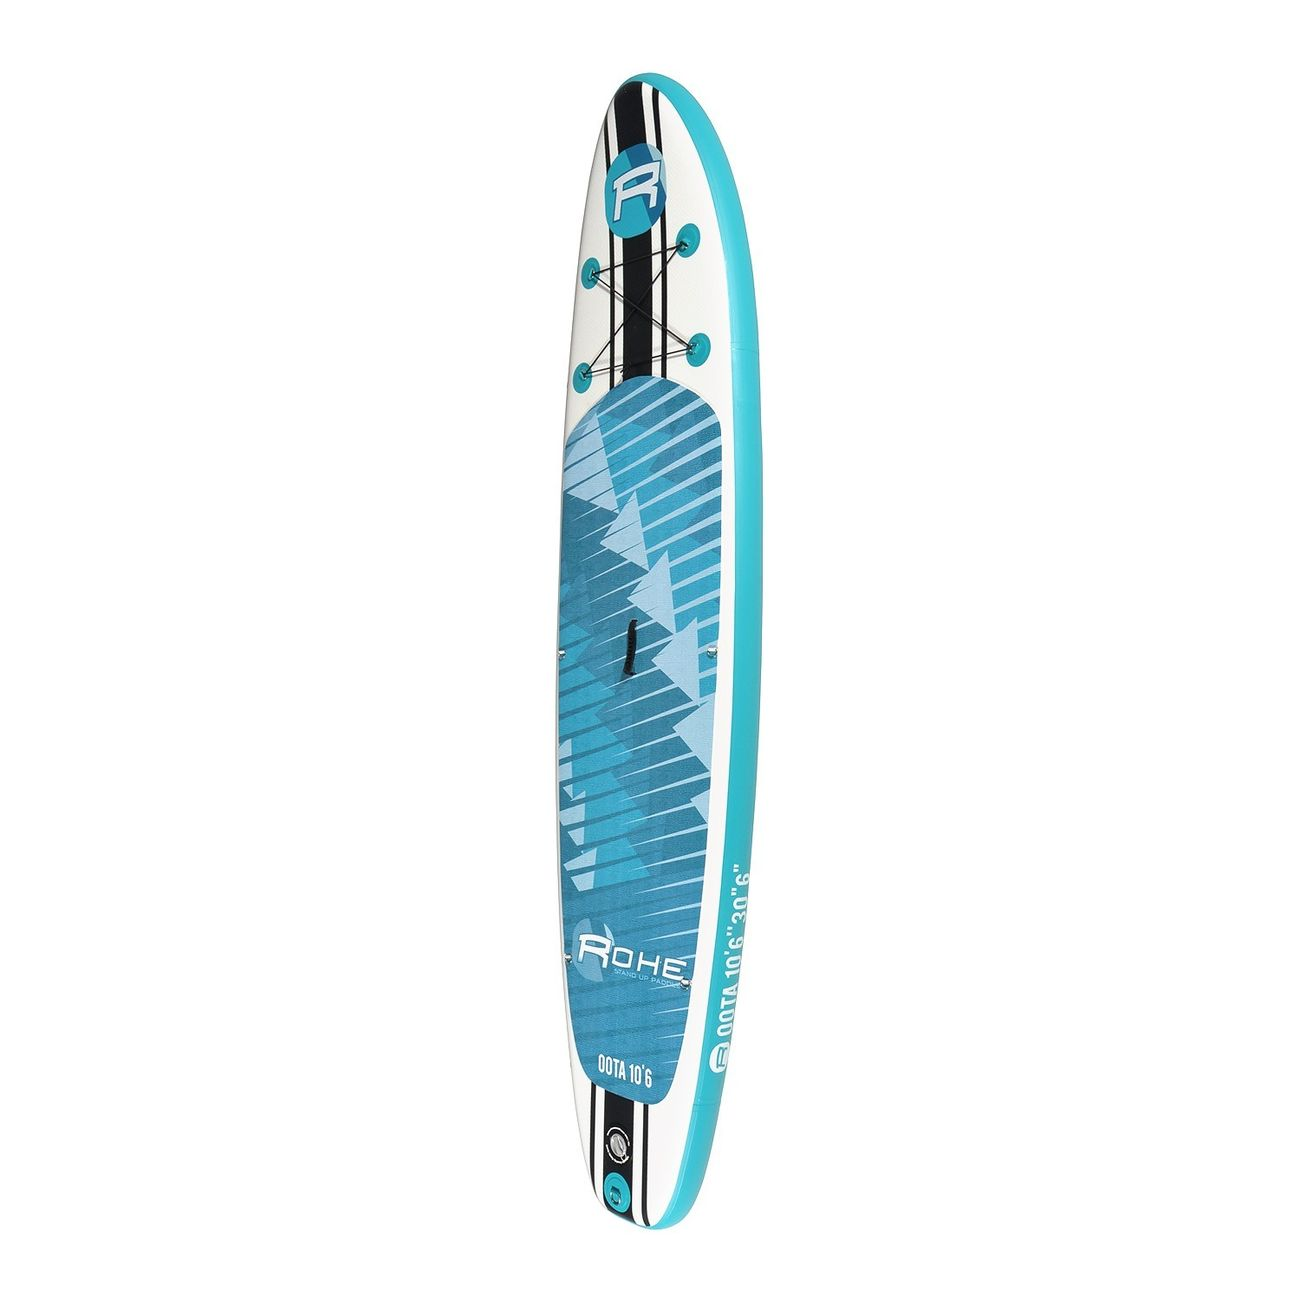 Stand up paddle  ROHE Stand Up Paddle Gonflable OOTA ROHE - 10'6'' (320cm) 30'' (76cm) 6'' (15cm) avec Pompe, Pagaie, Leash et Sac de transport